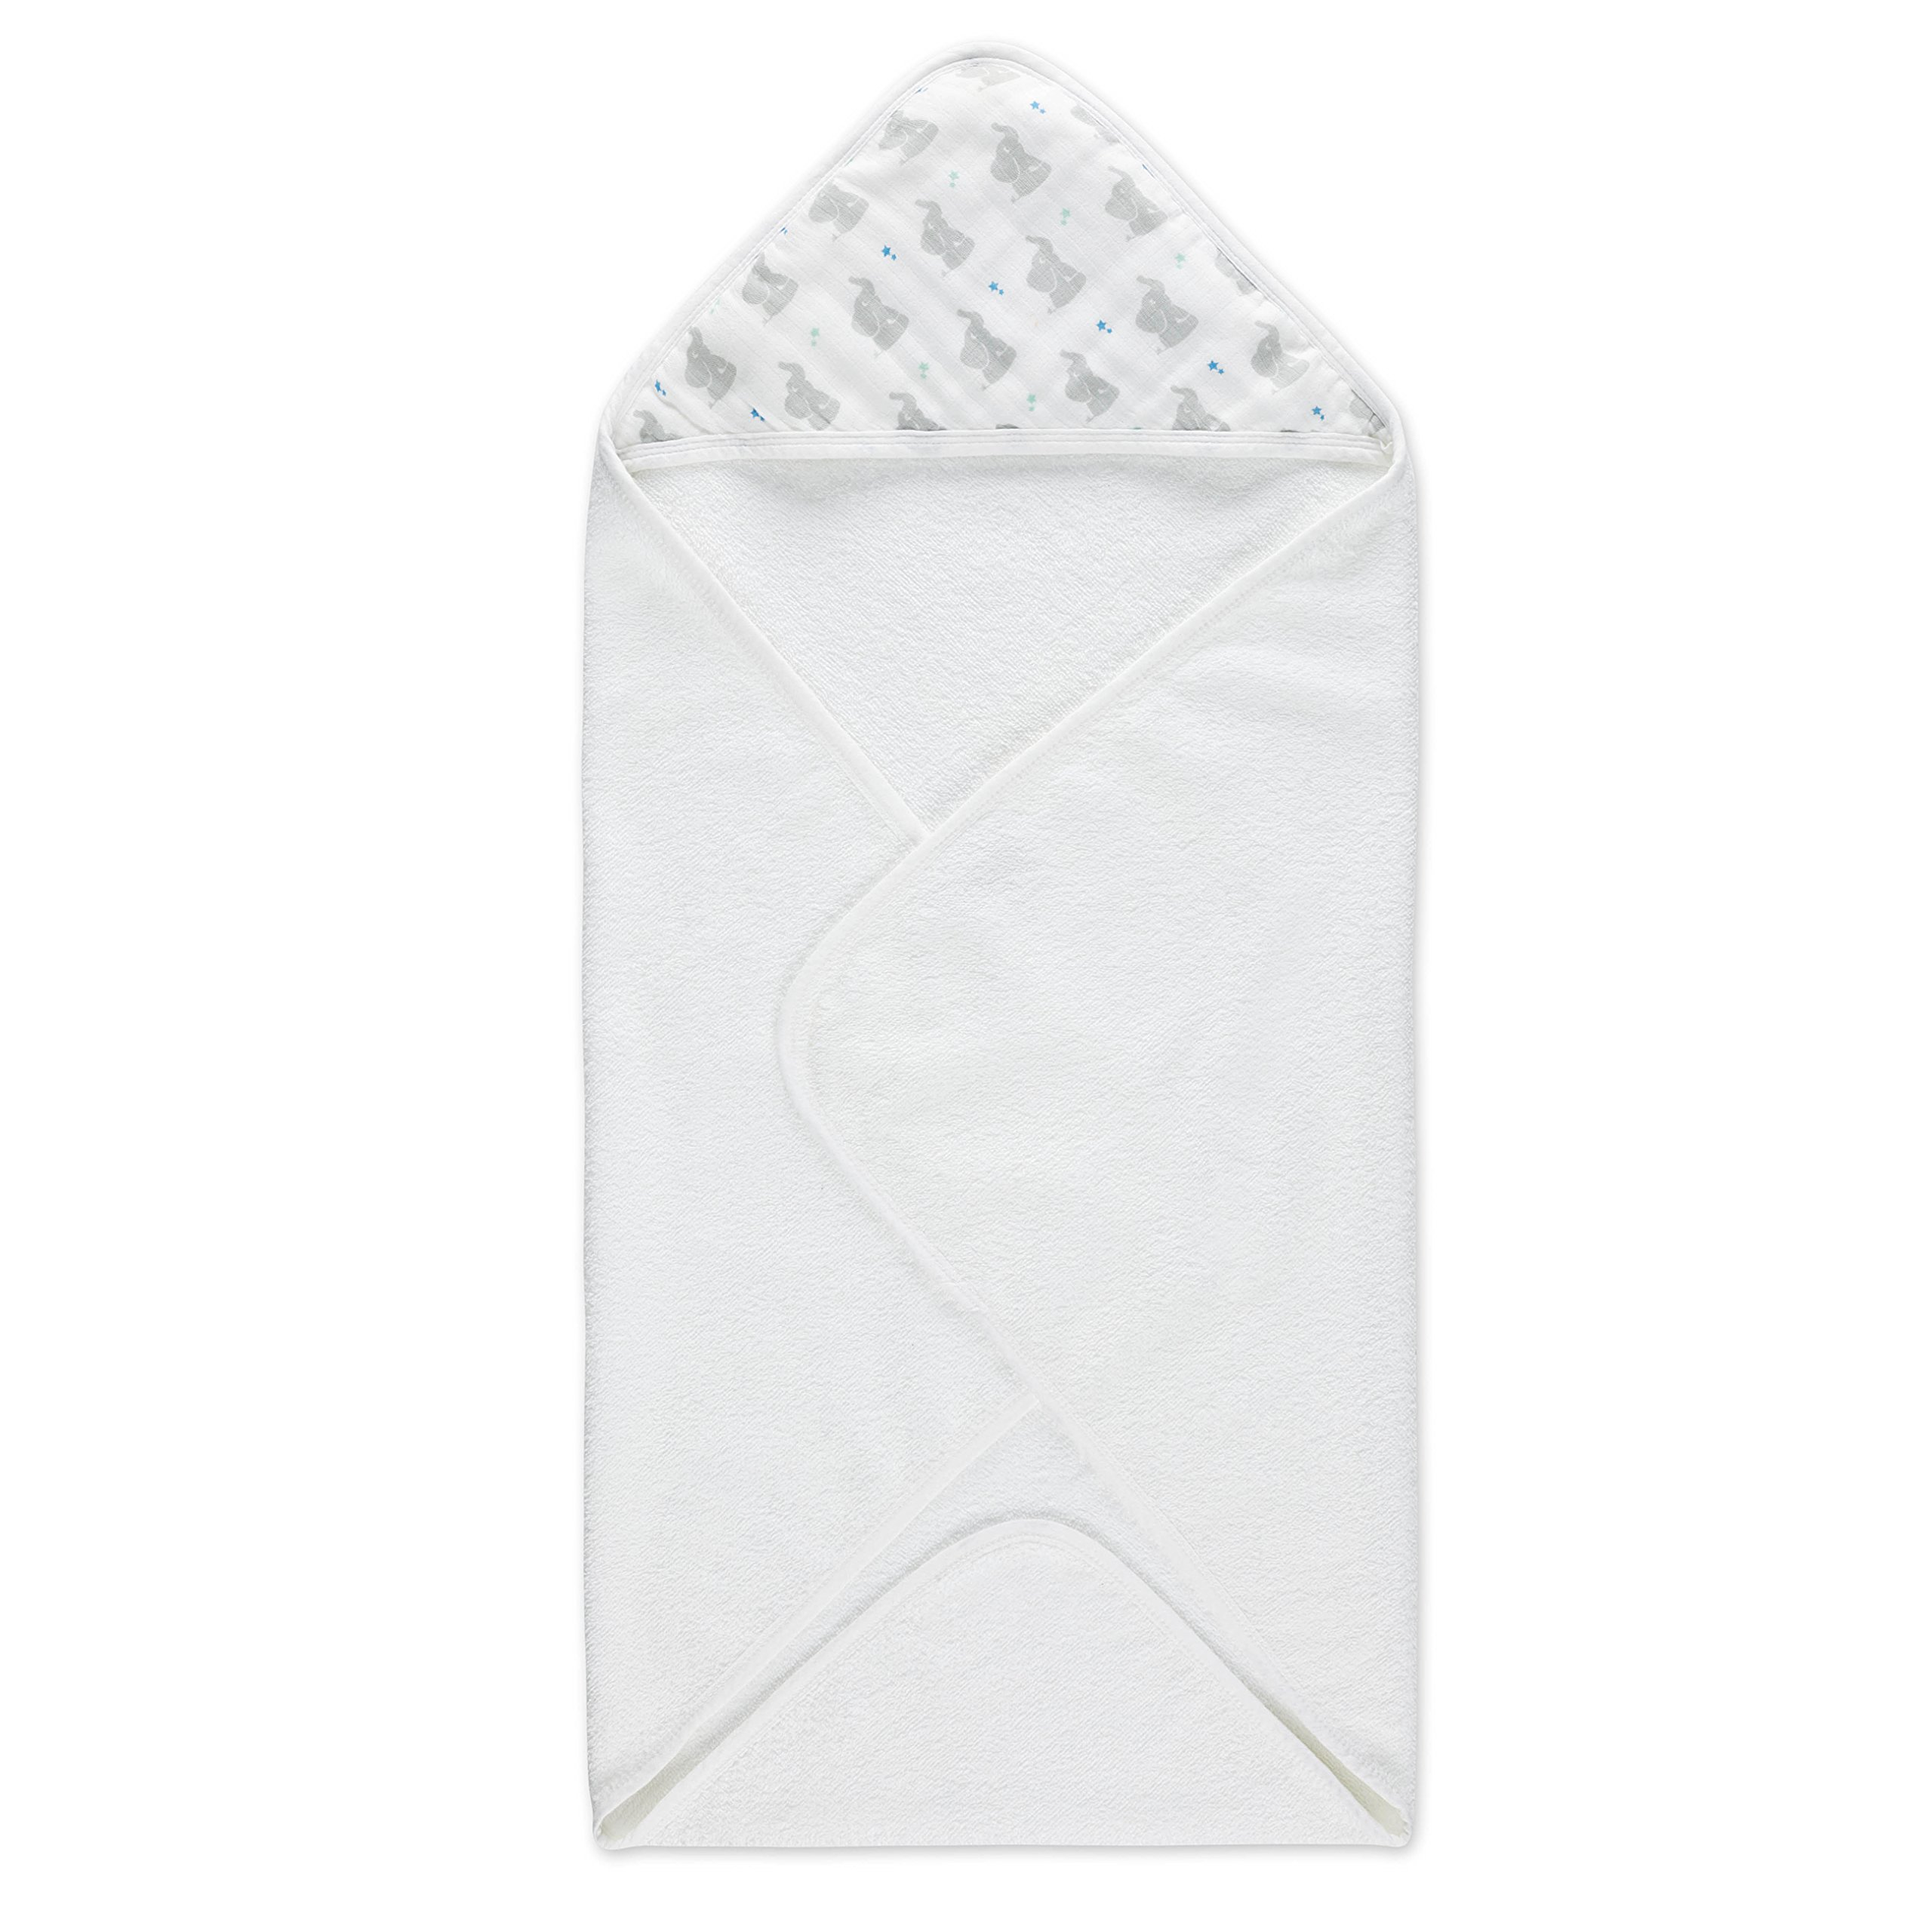 aden by aden + anais hooded towel, baby star